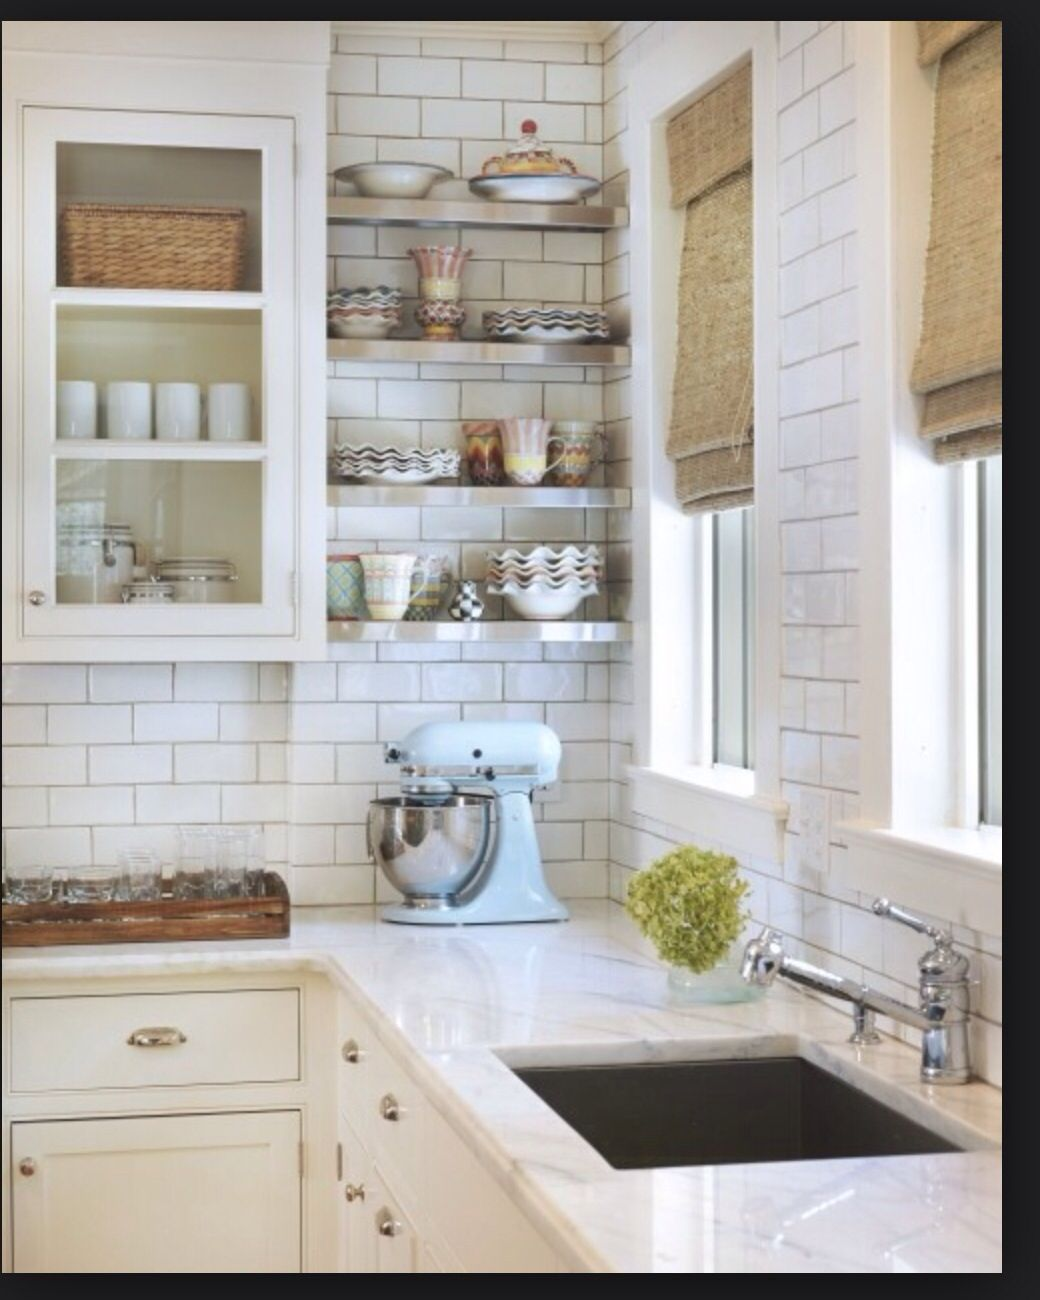 Open Shelf Kitchen Cabinet: Open Shelves, Subway Tiles And White Cabinets.